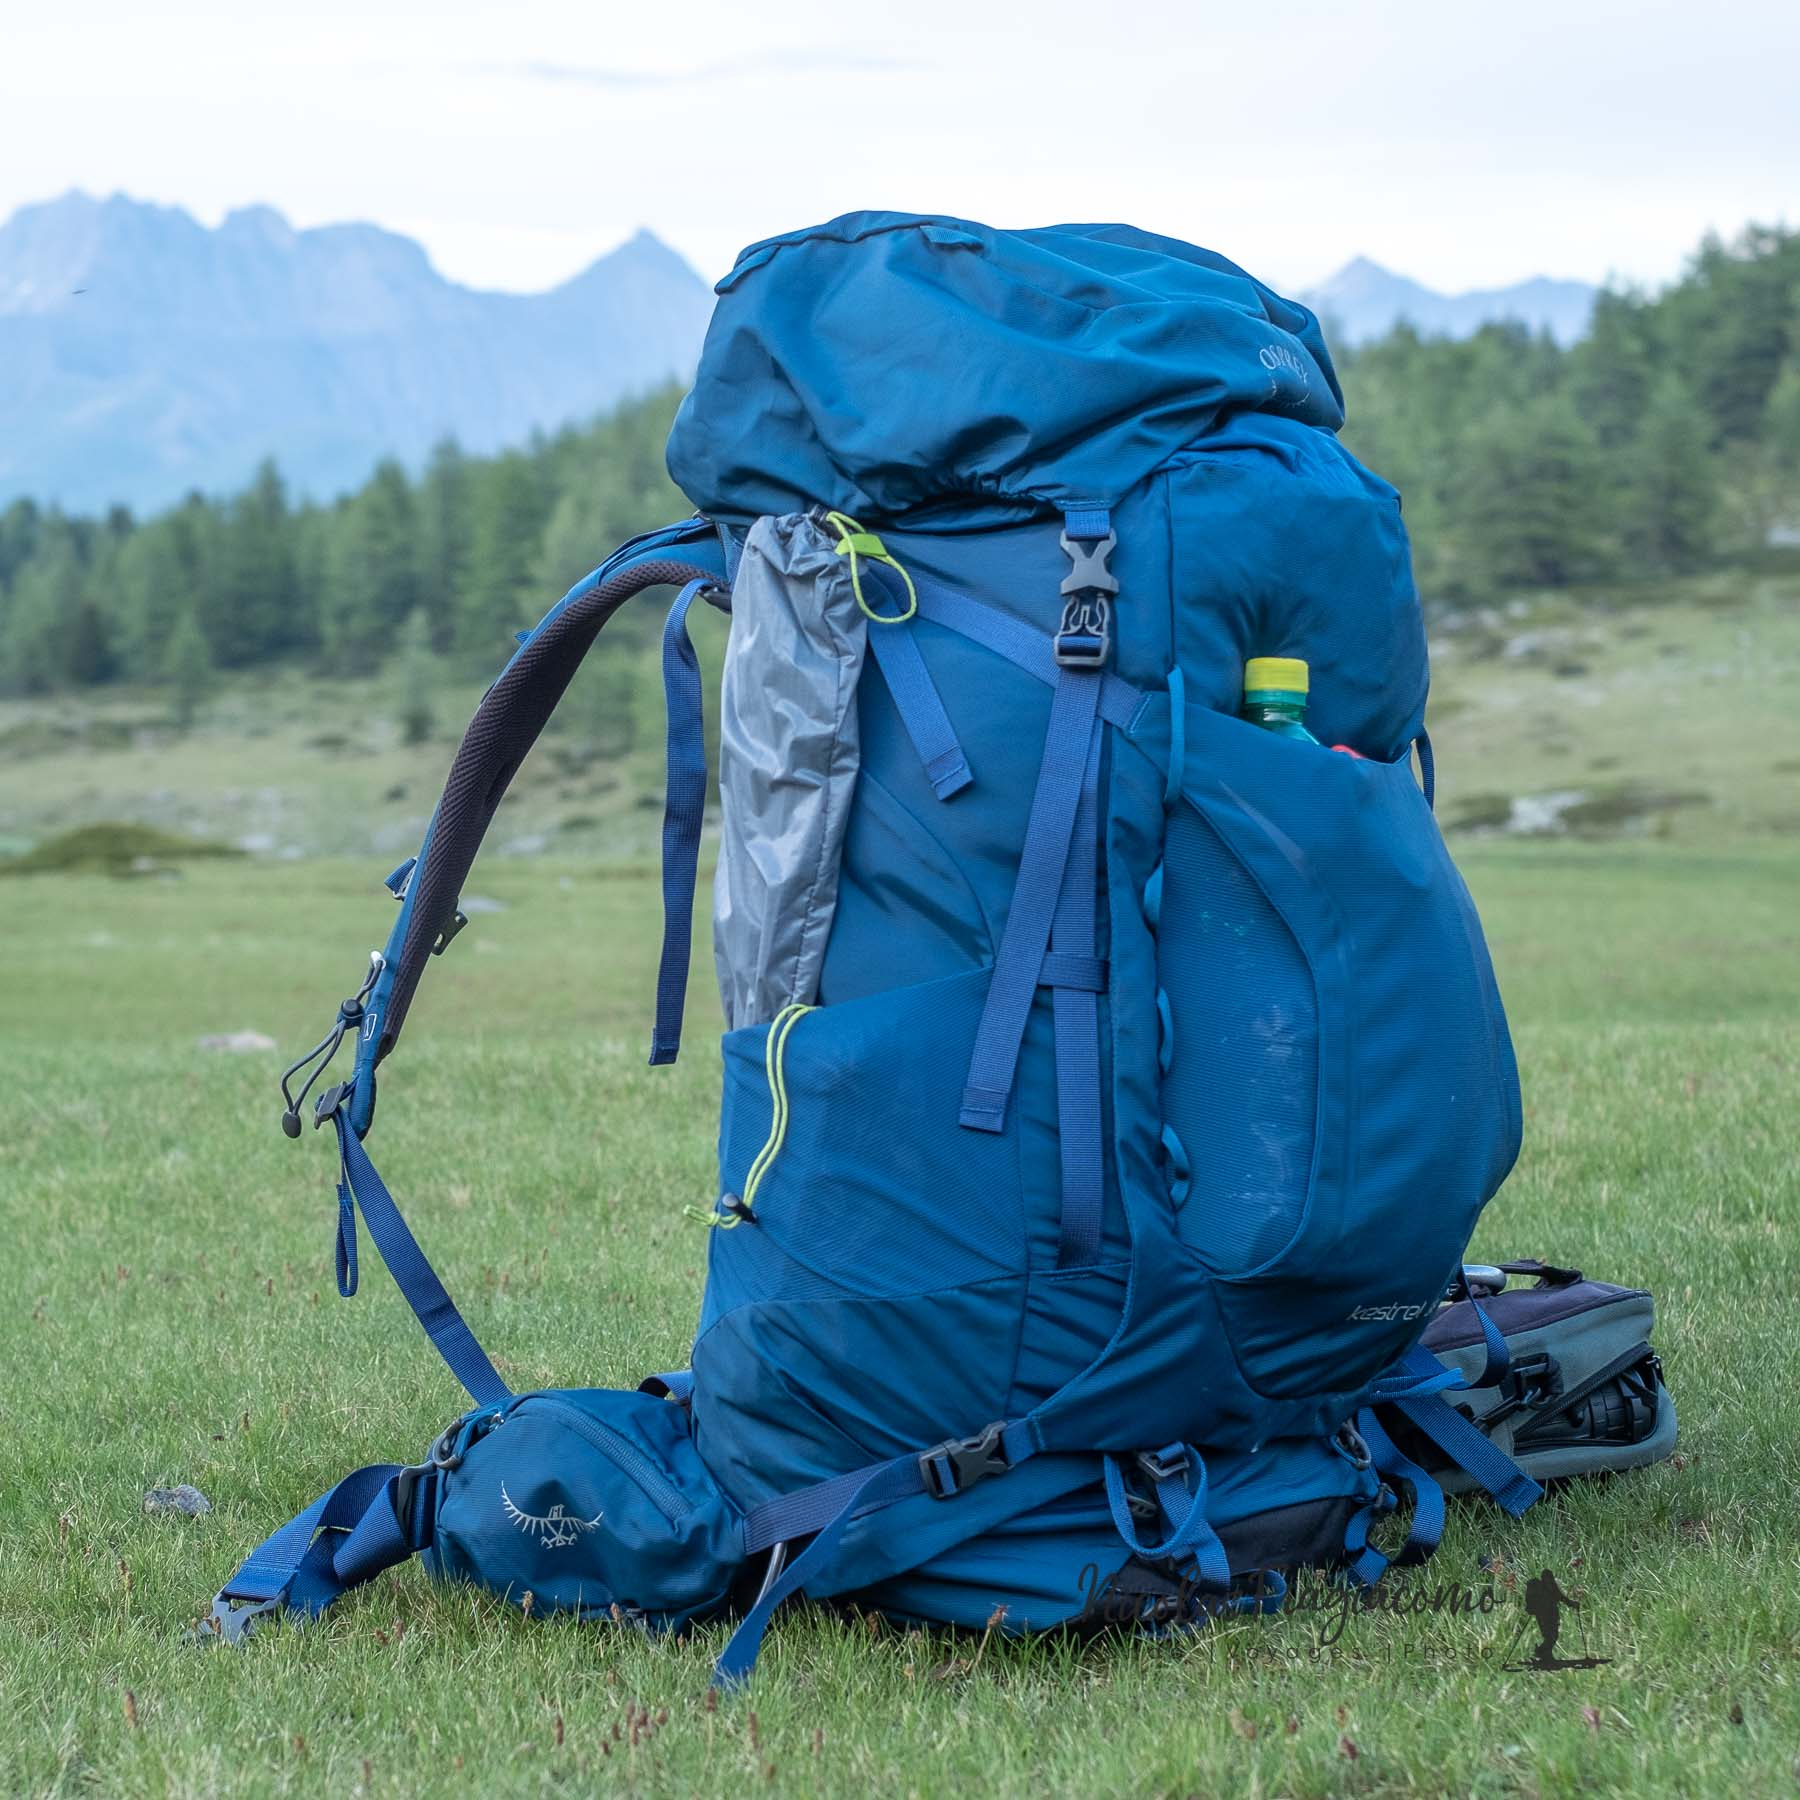 Test sac Osprey Kestrel 68